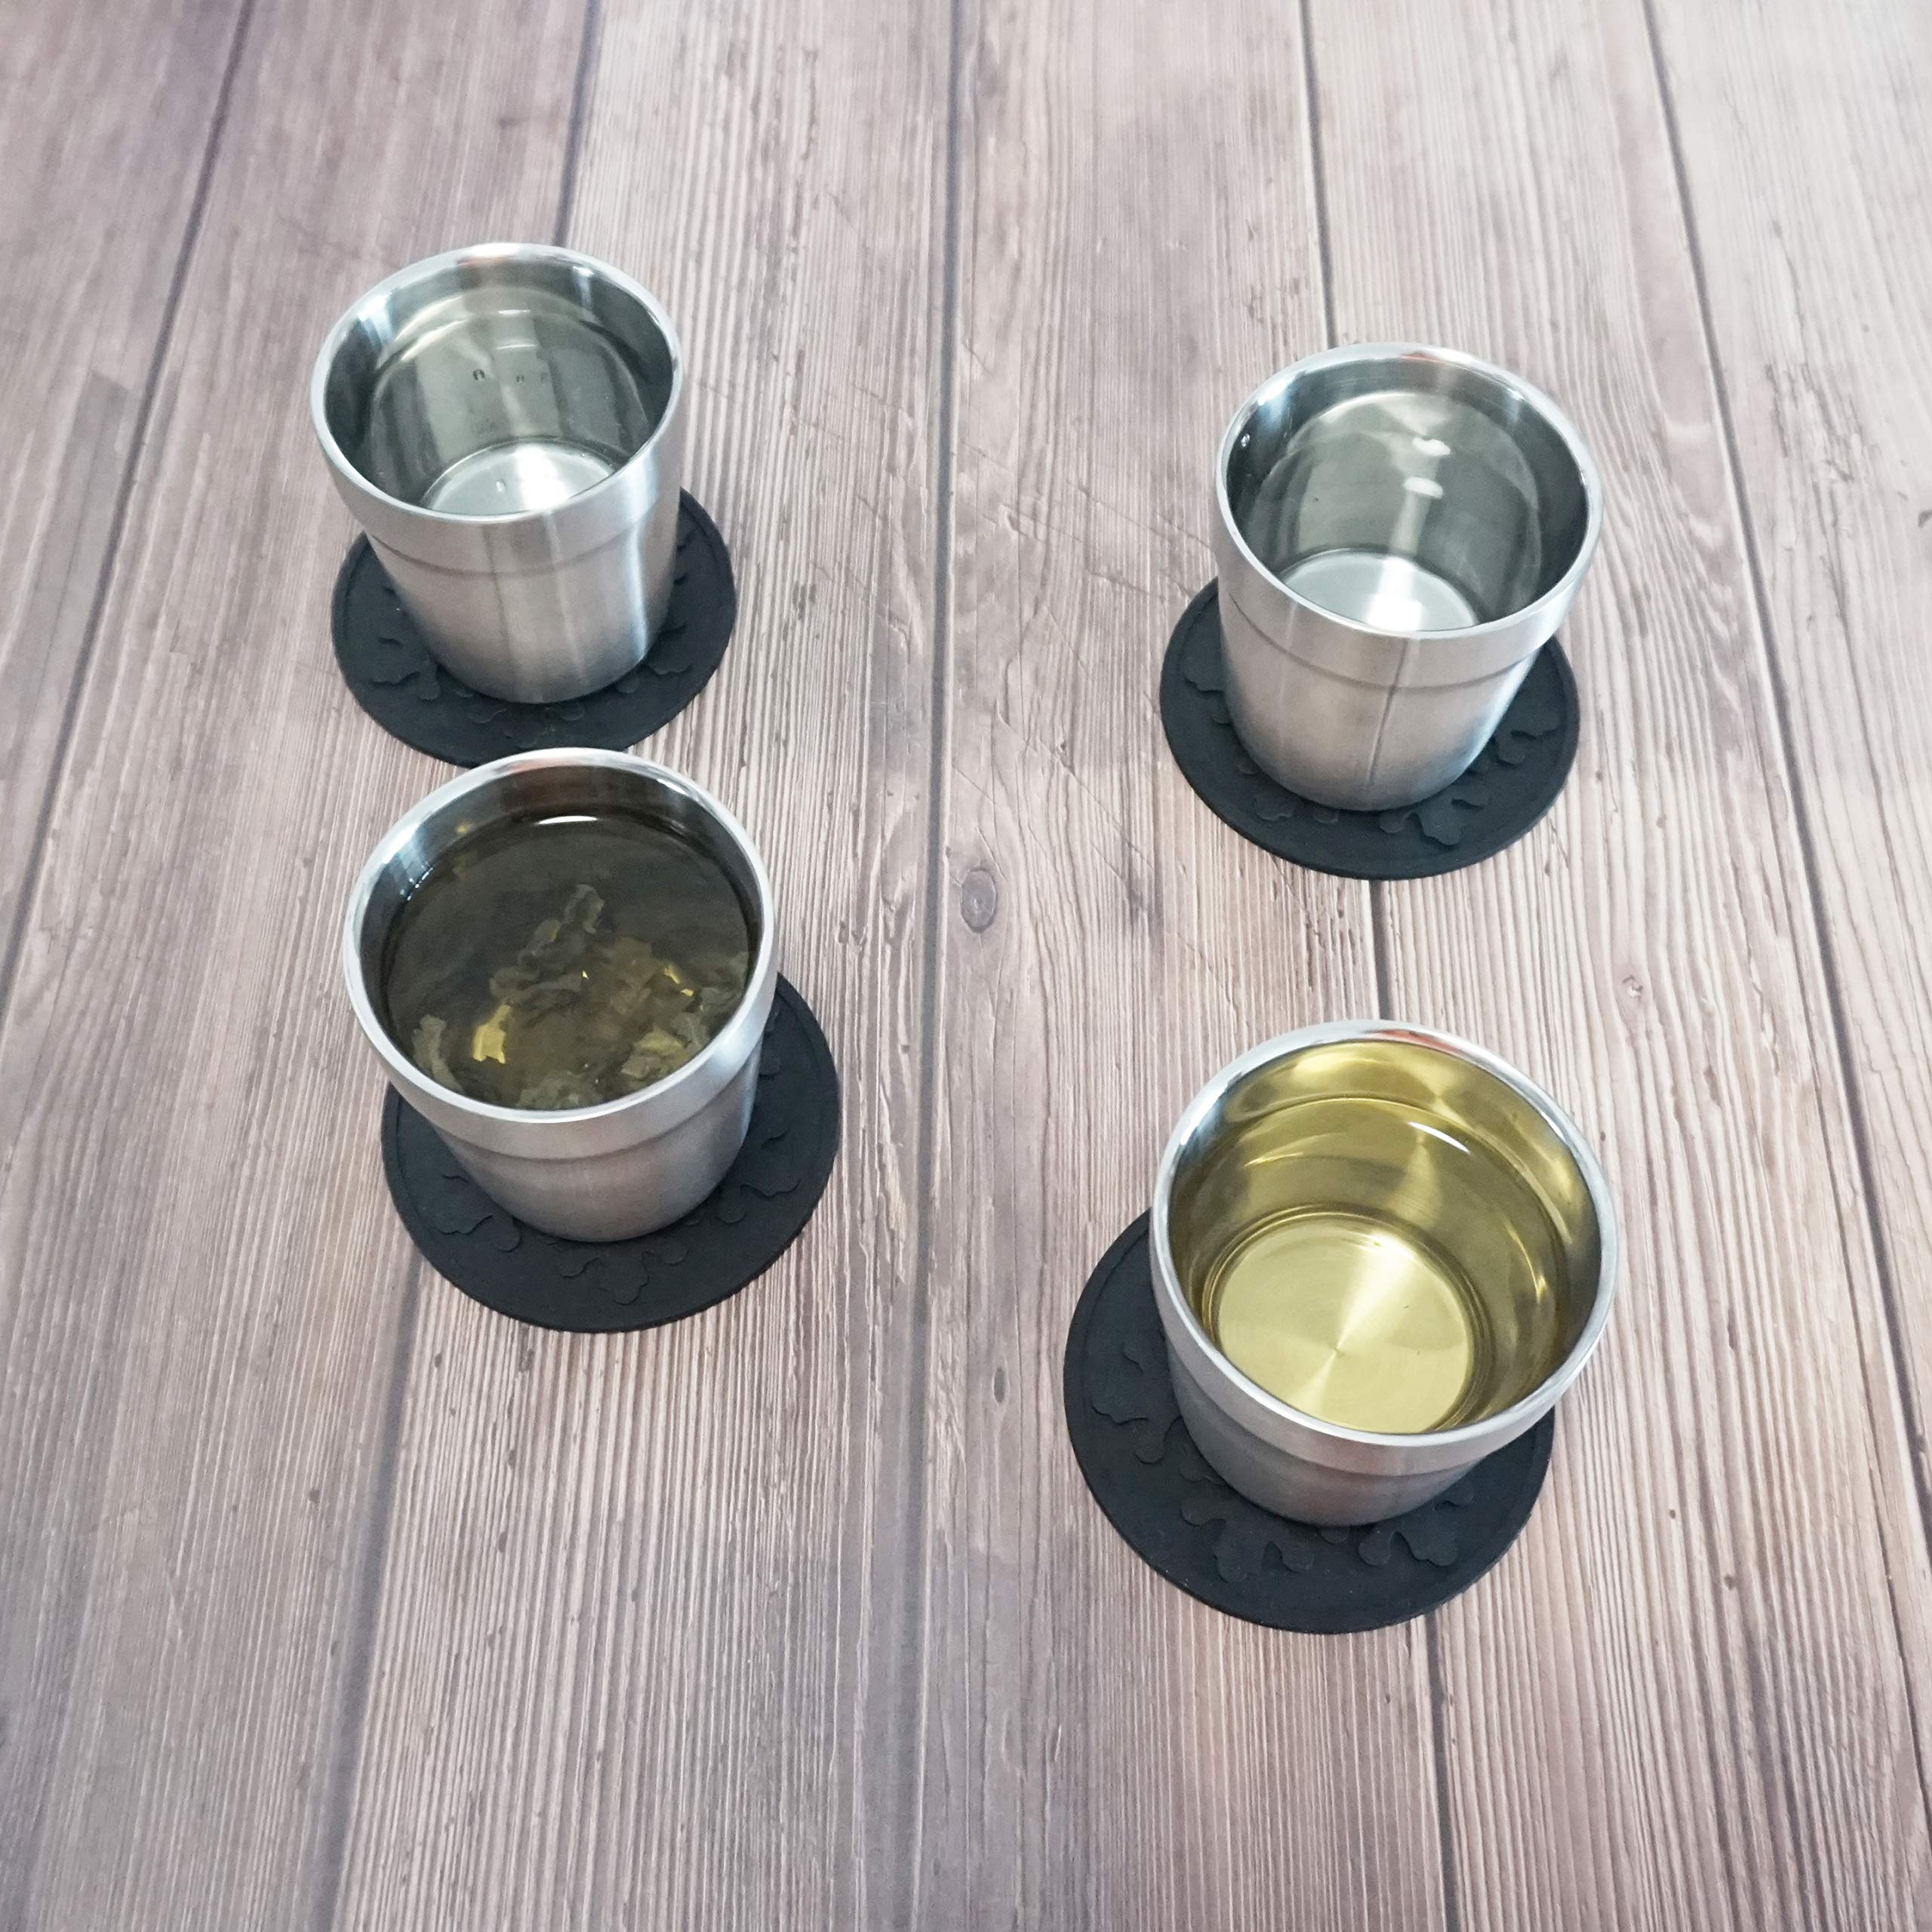 Stainless Steel Double Walled Cups (4 Piece)+Silicone Coaster(4 Piece) Stackable, Brushed Metal Drinking Glasses, Coffee Cup/Tea Cup/Chilling Beer Glasses, For Home&Outdoor, 6 oz(175ml)